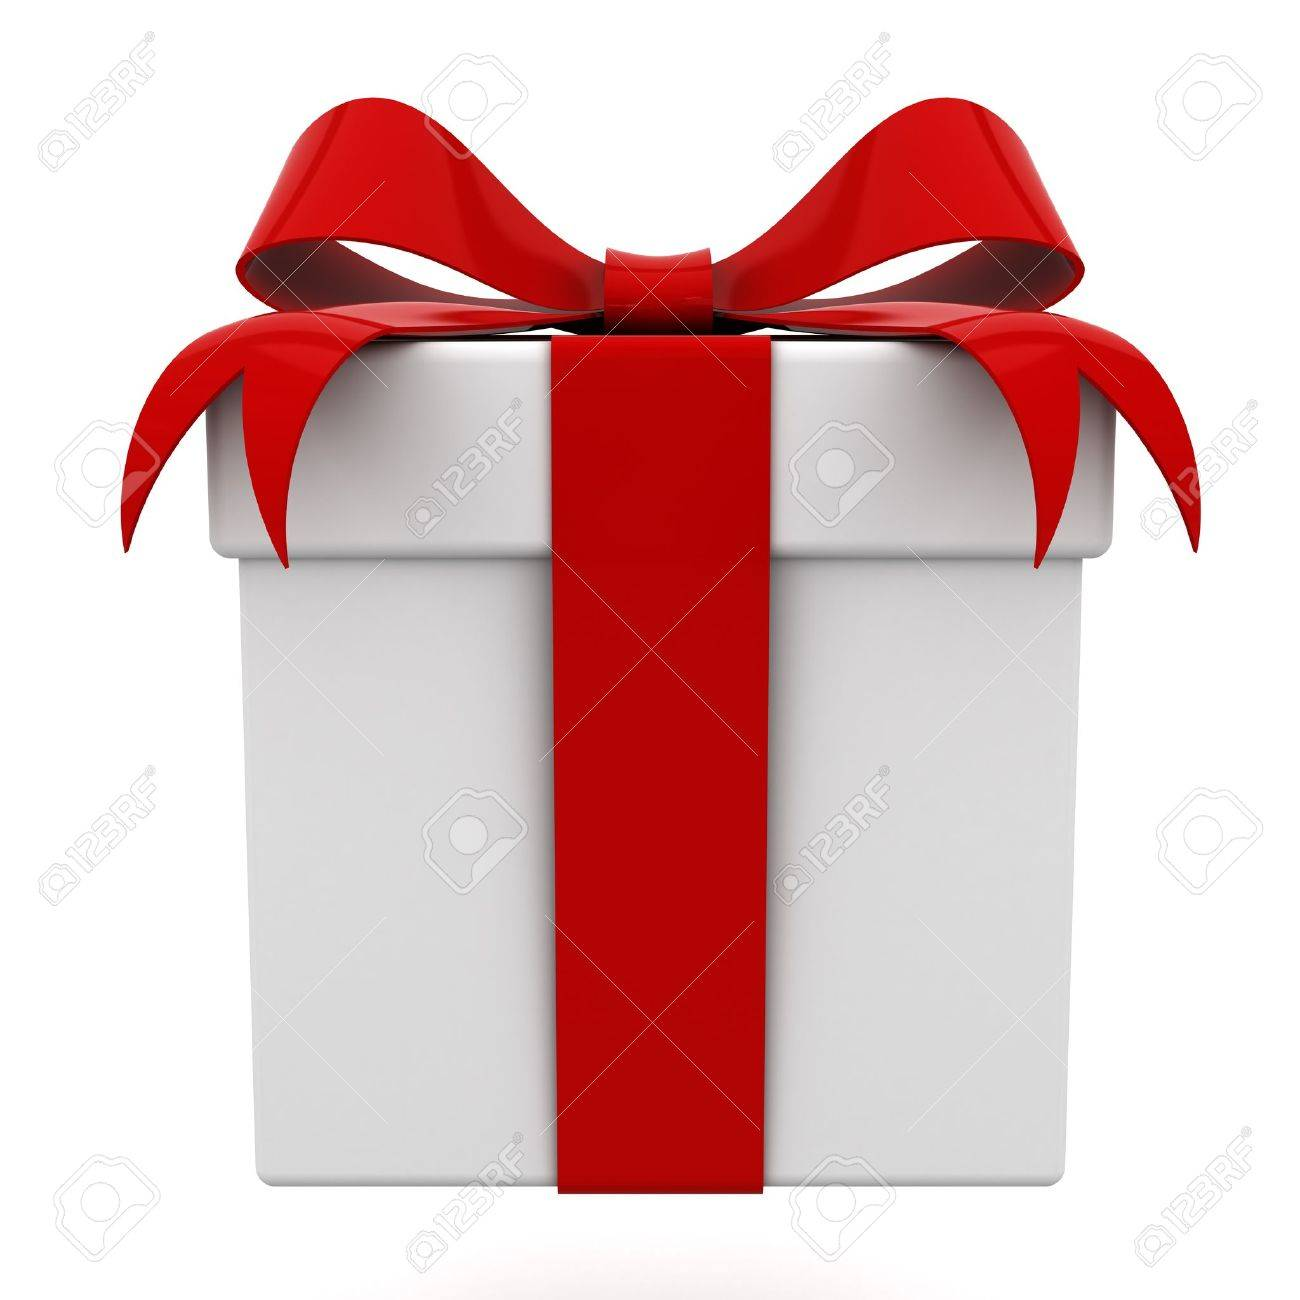 Gift box with red ribbon bow isolated on white background Stock Photo - 12432437